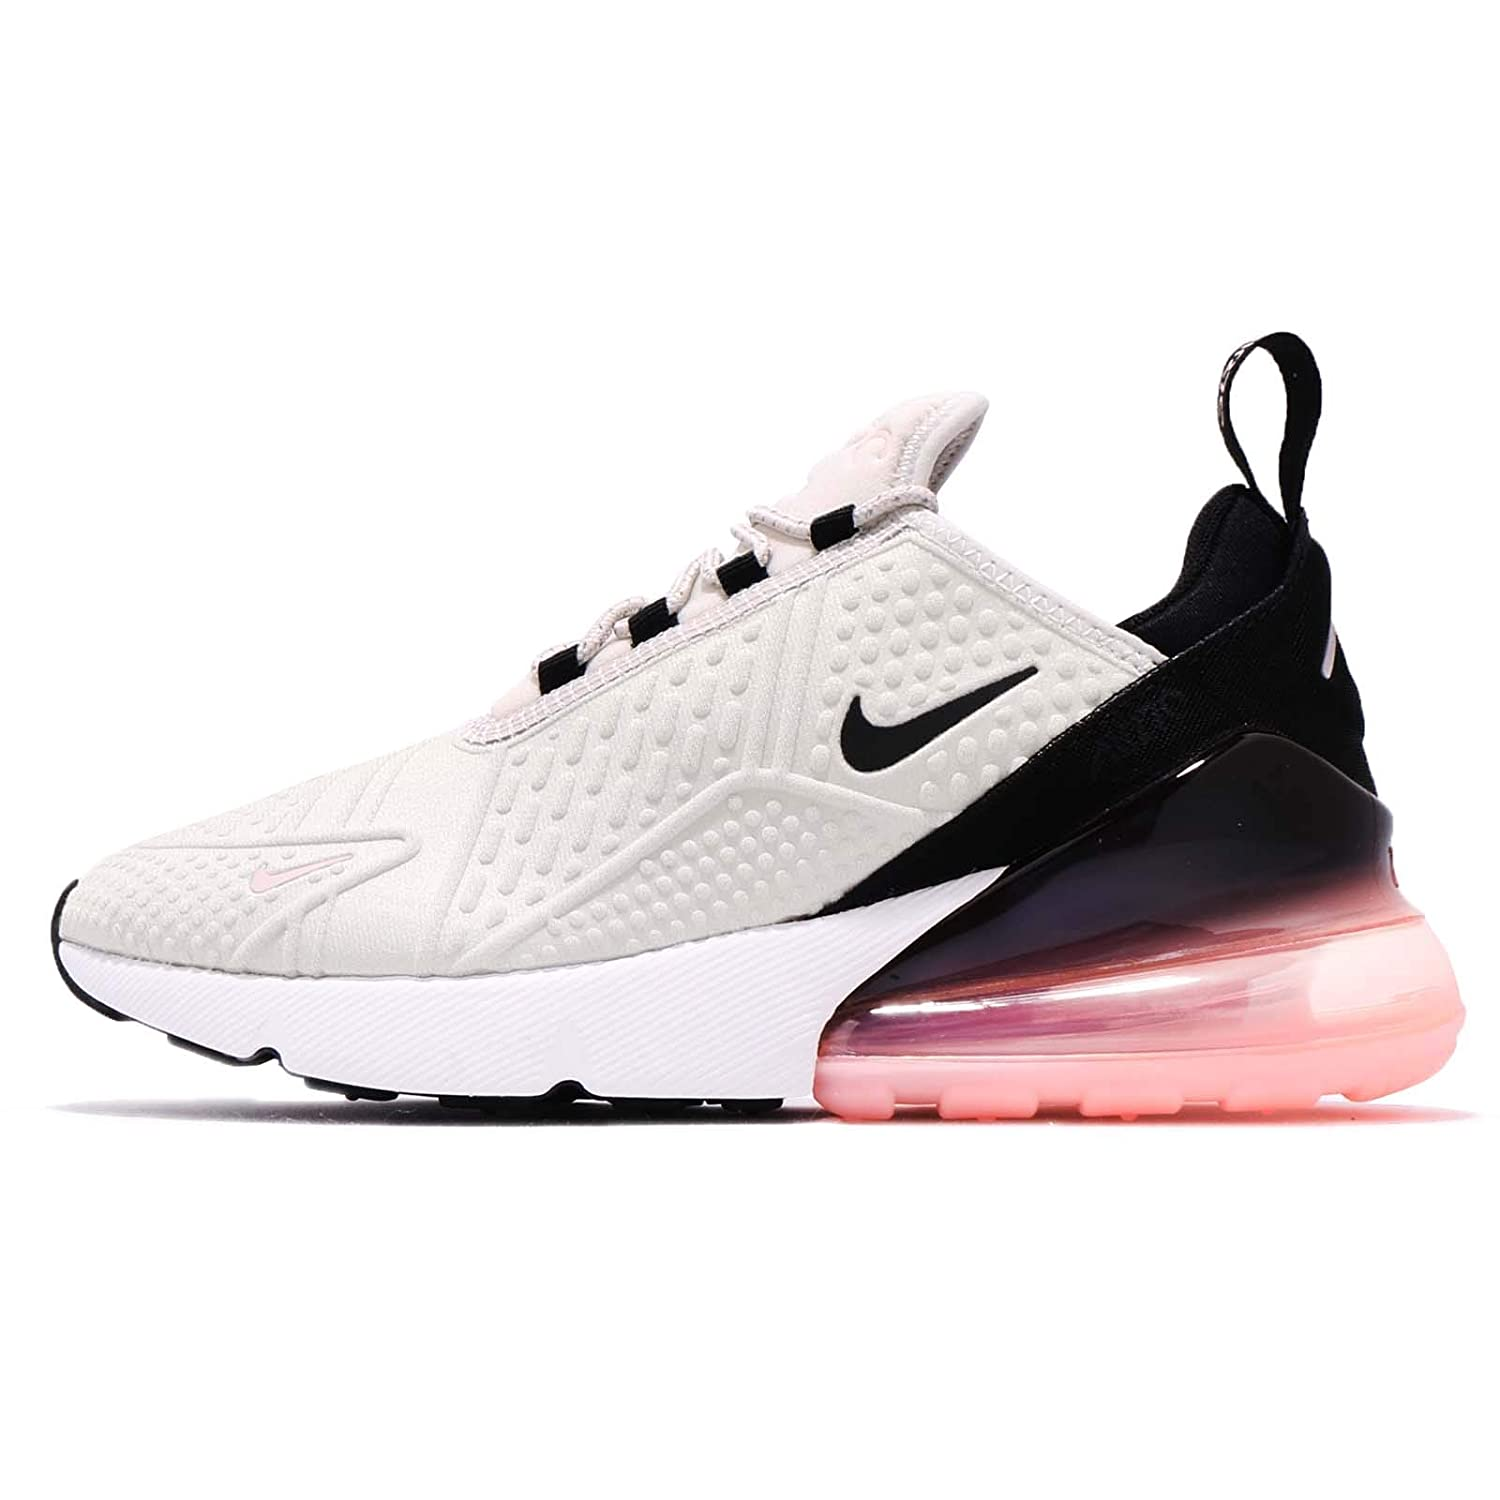 sneakers for cheap f9af1 623fa Nike Women's WMNS Air Max 270 SE, Light Bone/Black-Storm Pink, 7 US